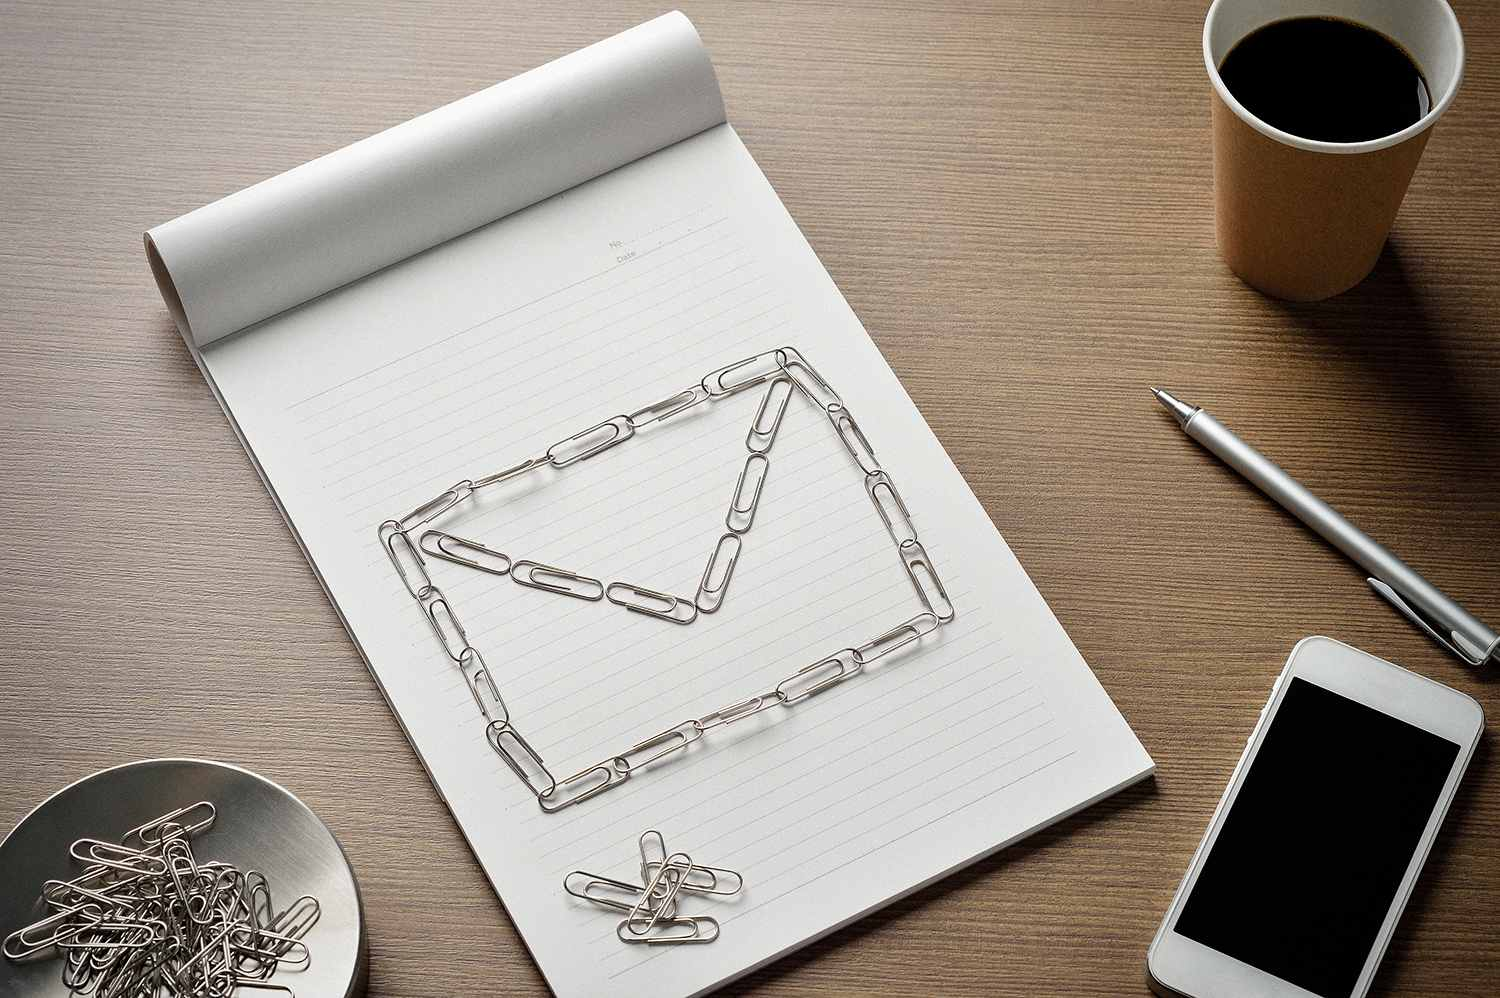 E-mail icon made out of paperclips next to a phone representing email attachments